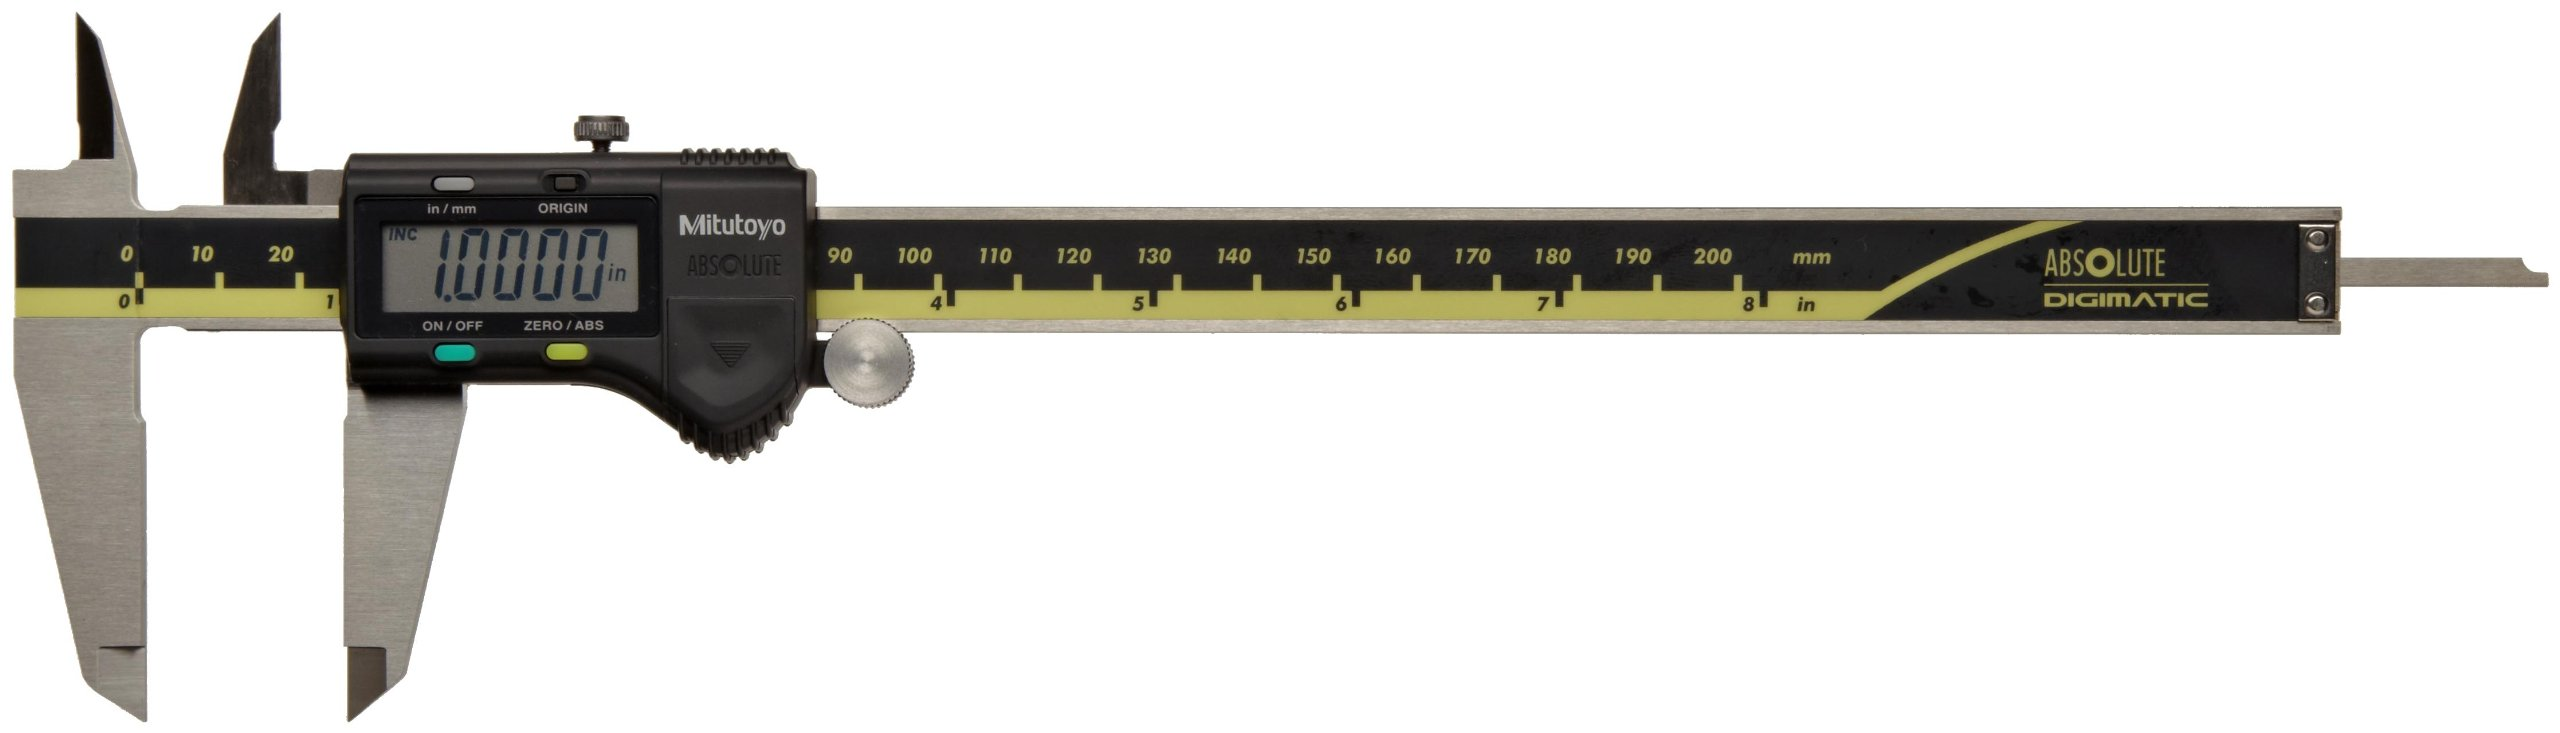 Mitutoyo ABSOLUTE 500-197-20 Digital Caliper, Stainless Steel, Battery Powered, Inch/Metric, 0-8'' Range, +/-0.001'' Accuracy, 0.0005'' Resolution